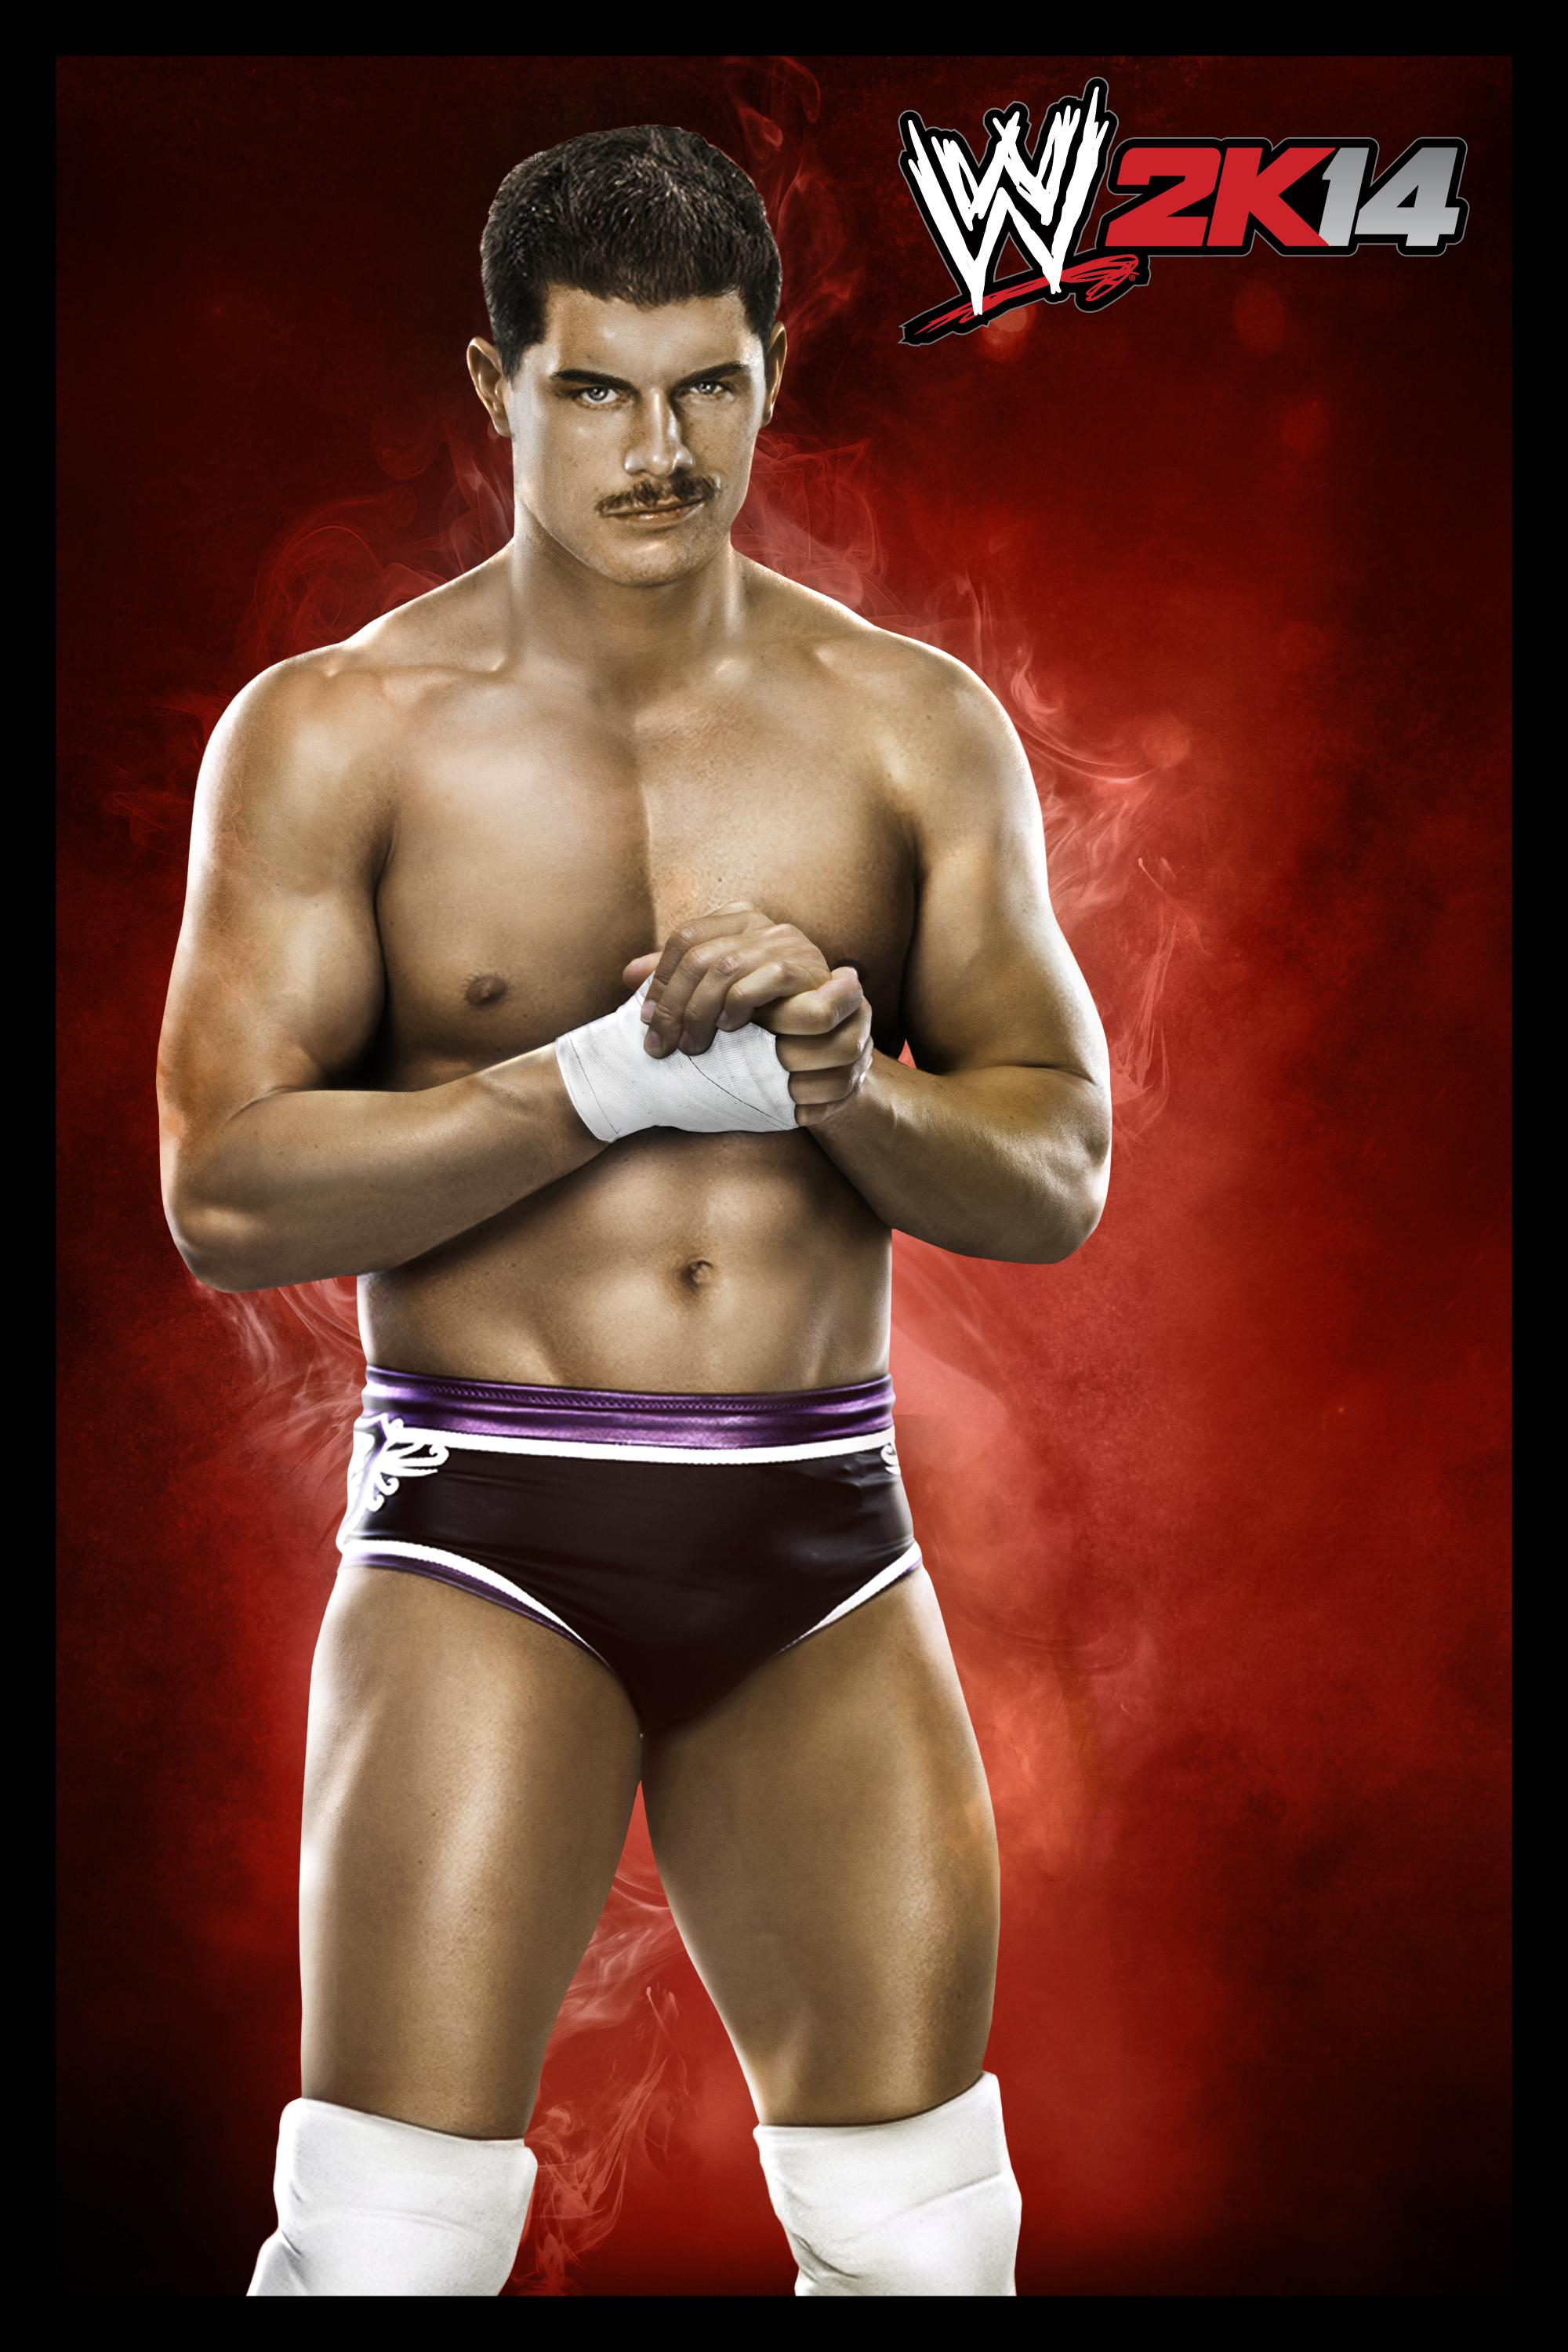 WWE 2K14's full character roster revealed, get the list & pics here - VG247